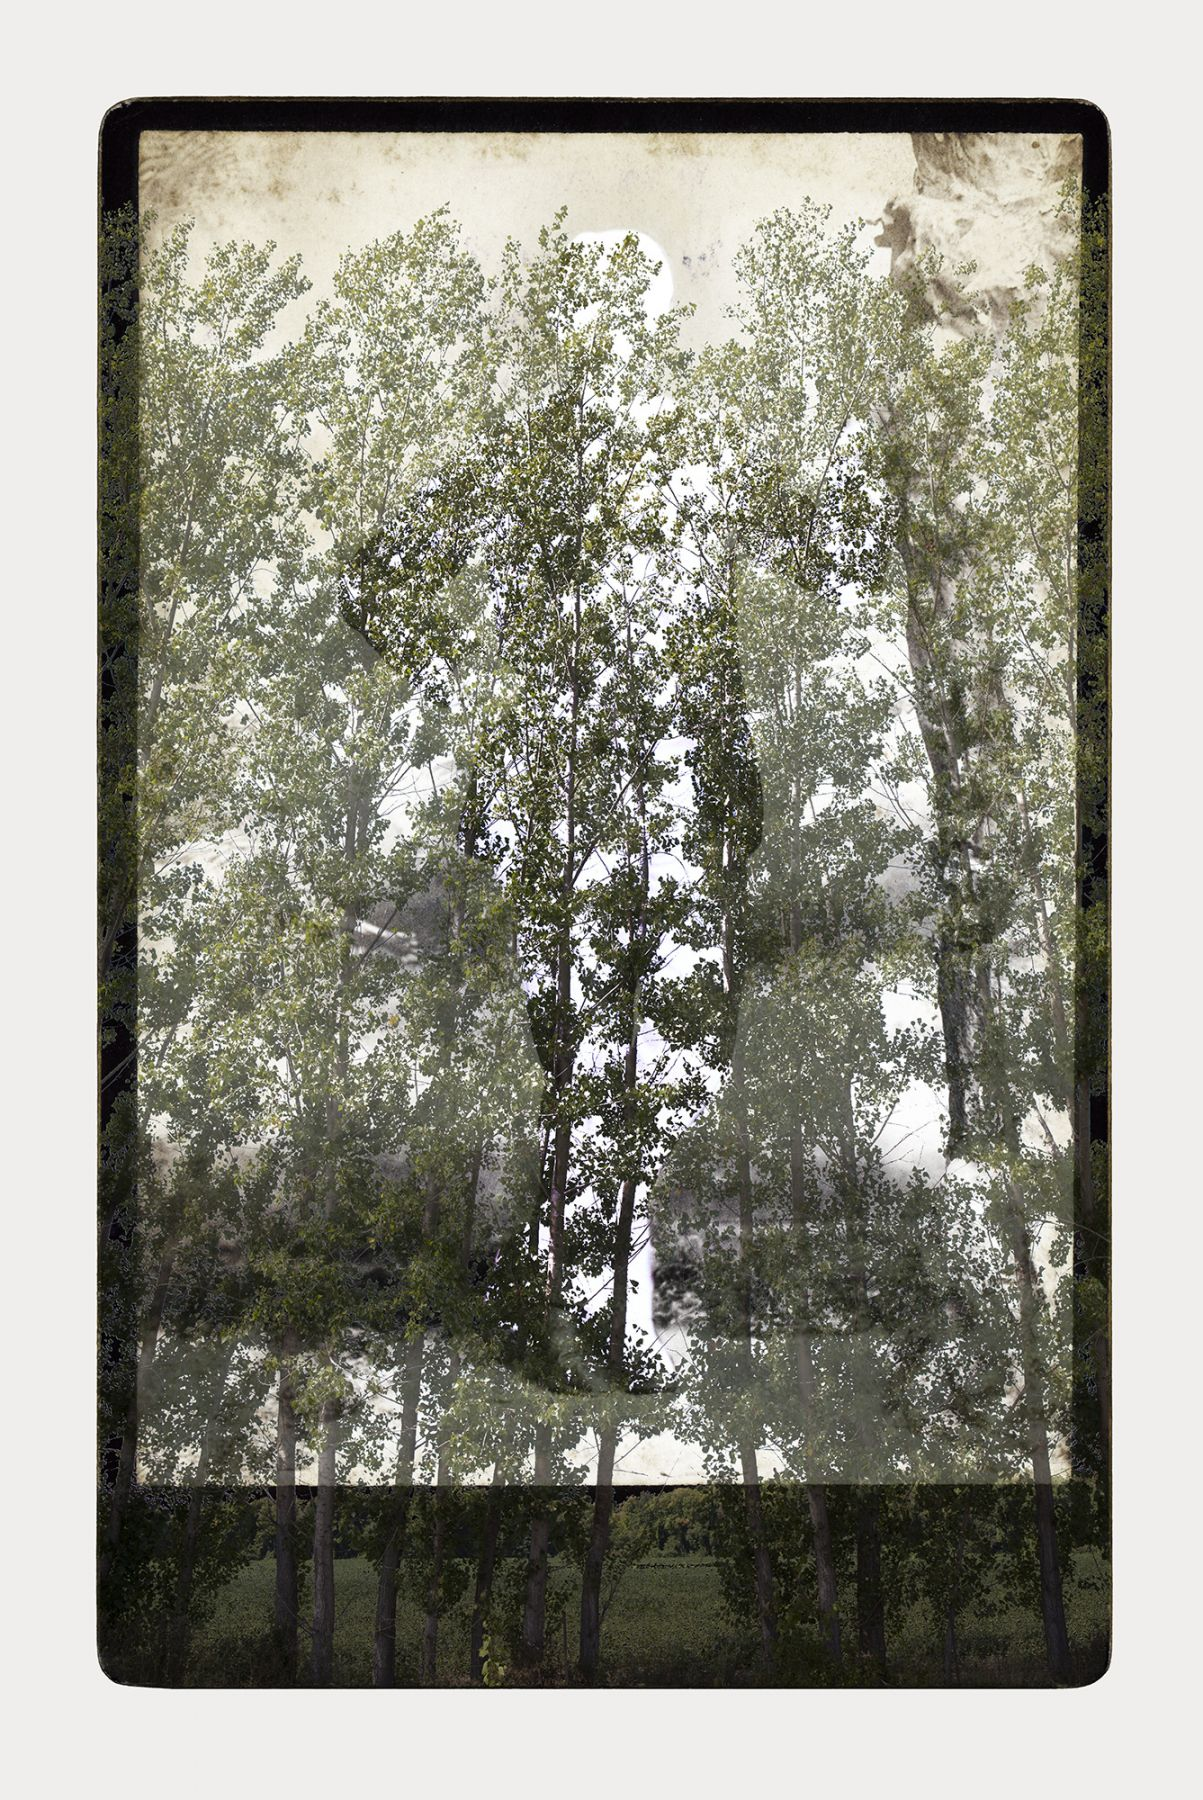 SARA ANGELUCCI | ARBORETUM (MAN/POPLAR) | PIGMENT PRINT ON ARCHIVAL PAPER | 24 X 34 INCHES | 2016